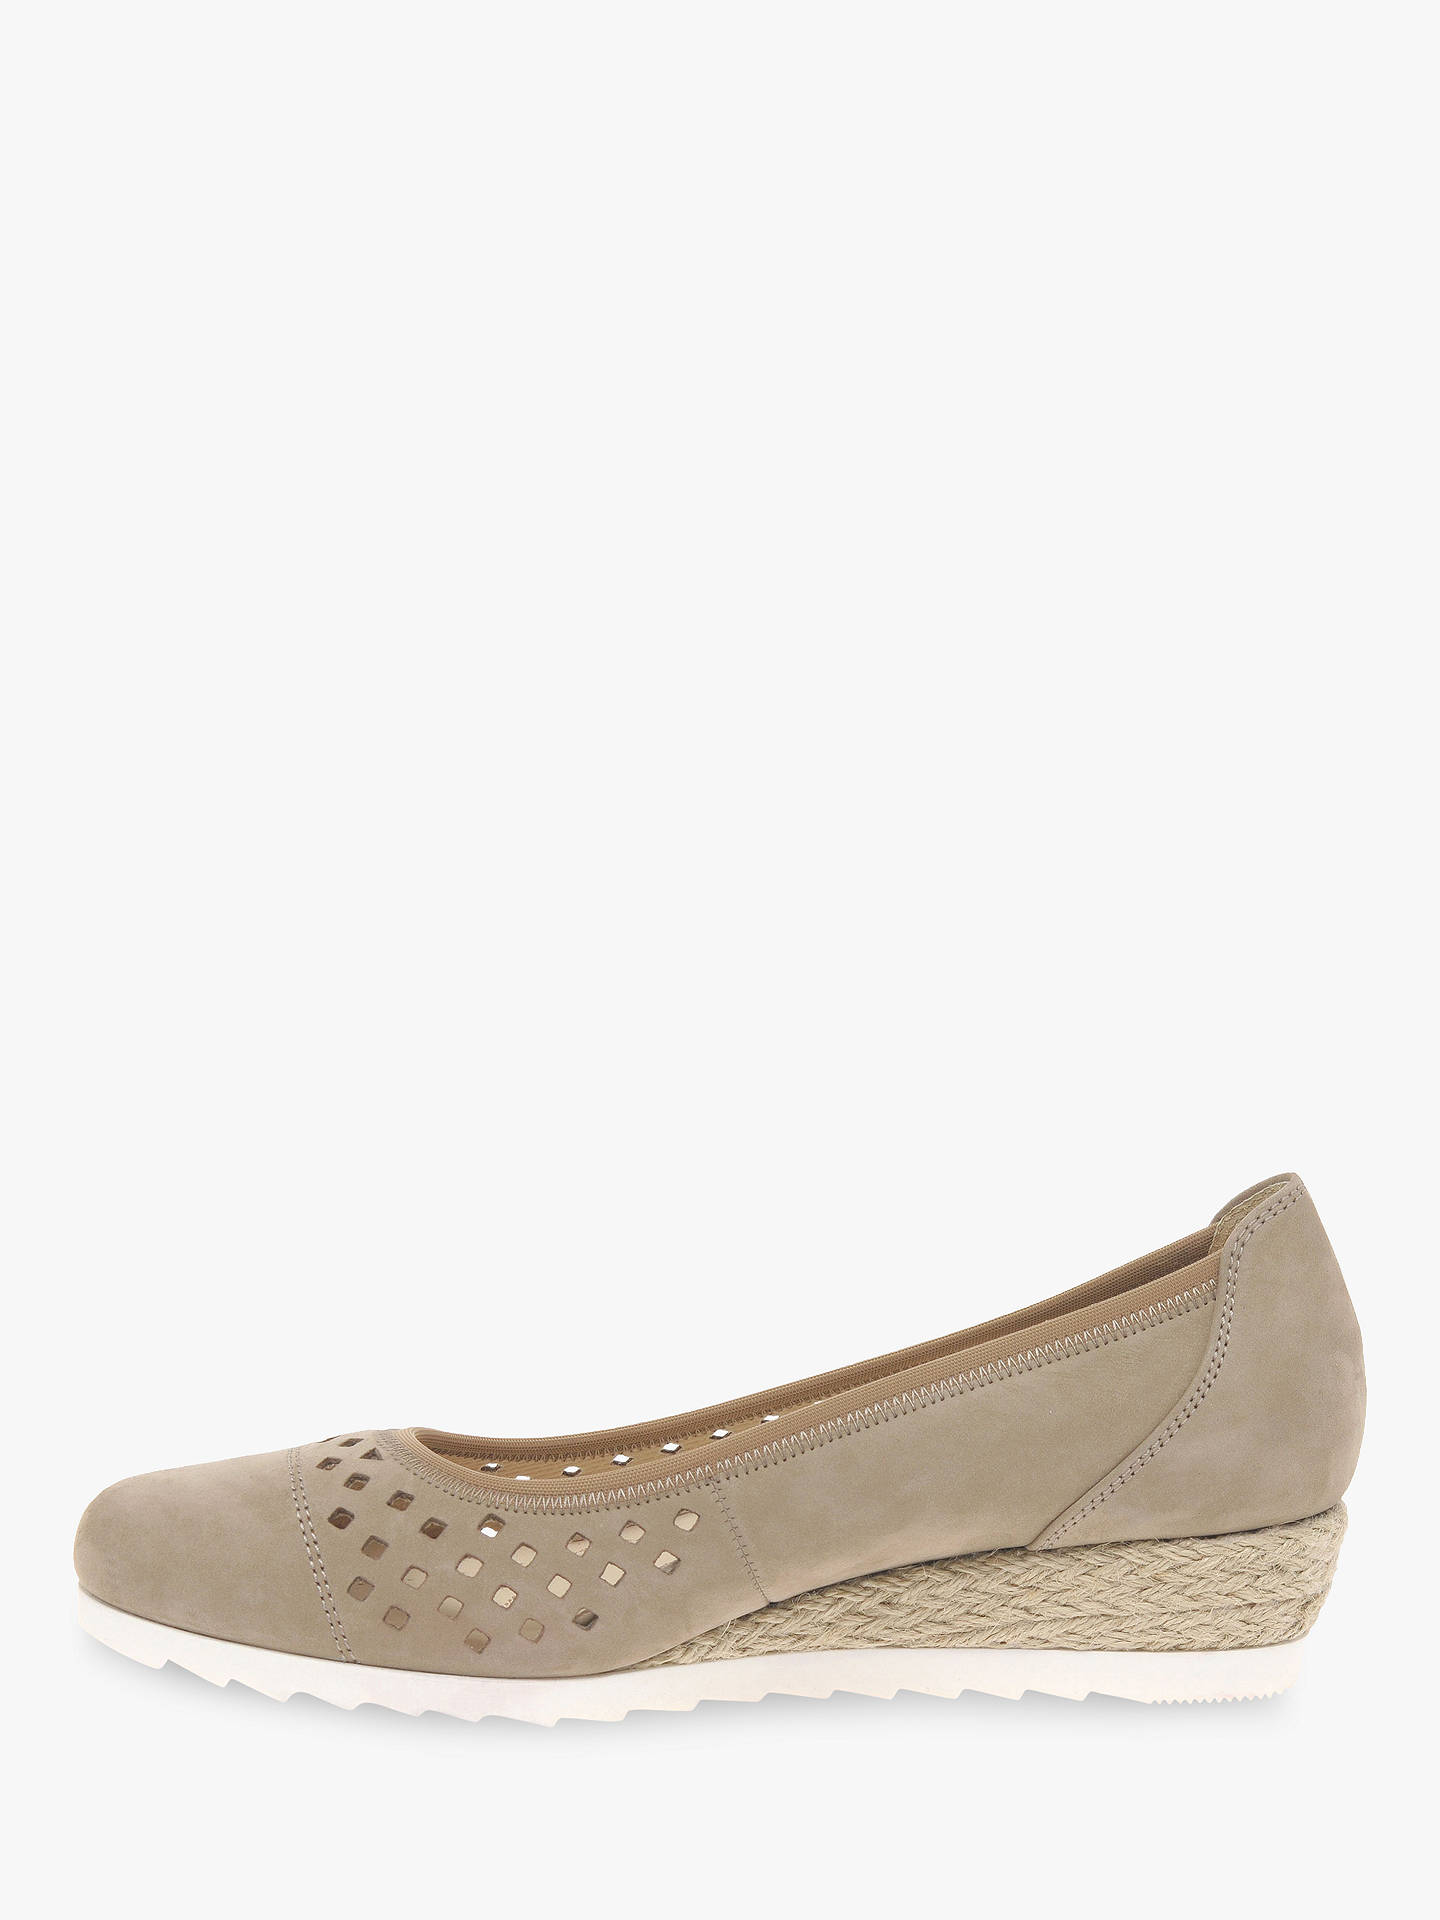 aee9774e9c7 Gabor Evelyn Wide Fit Low Wedge Pumps at John Lewis   Partners